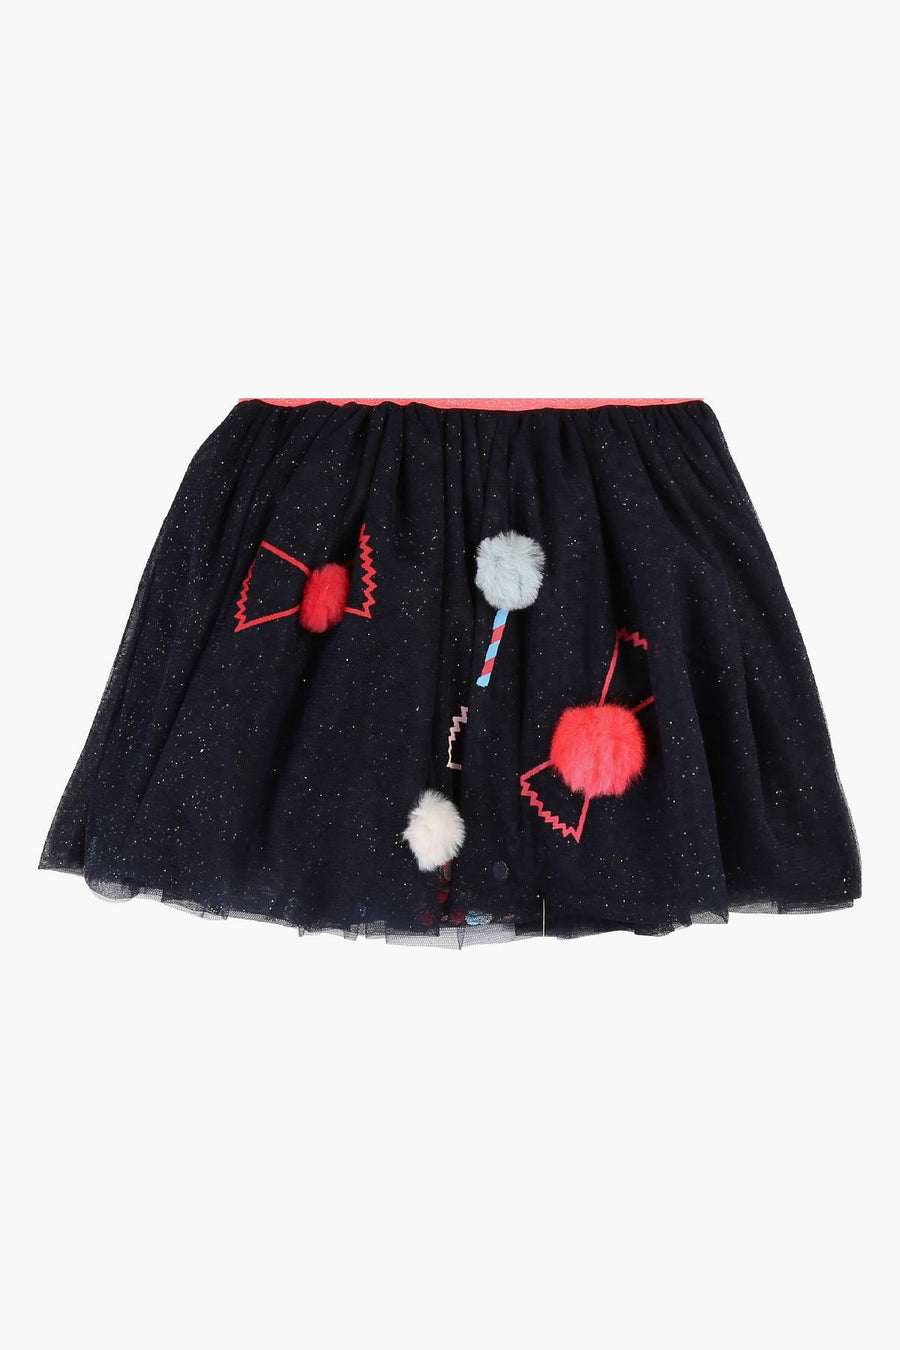 Billieblush Glitter Tulle Girls Skirt